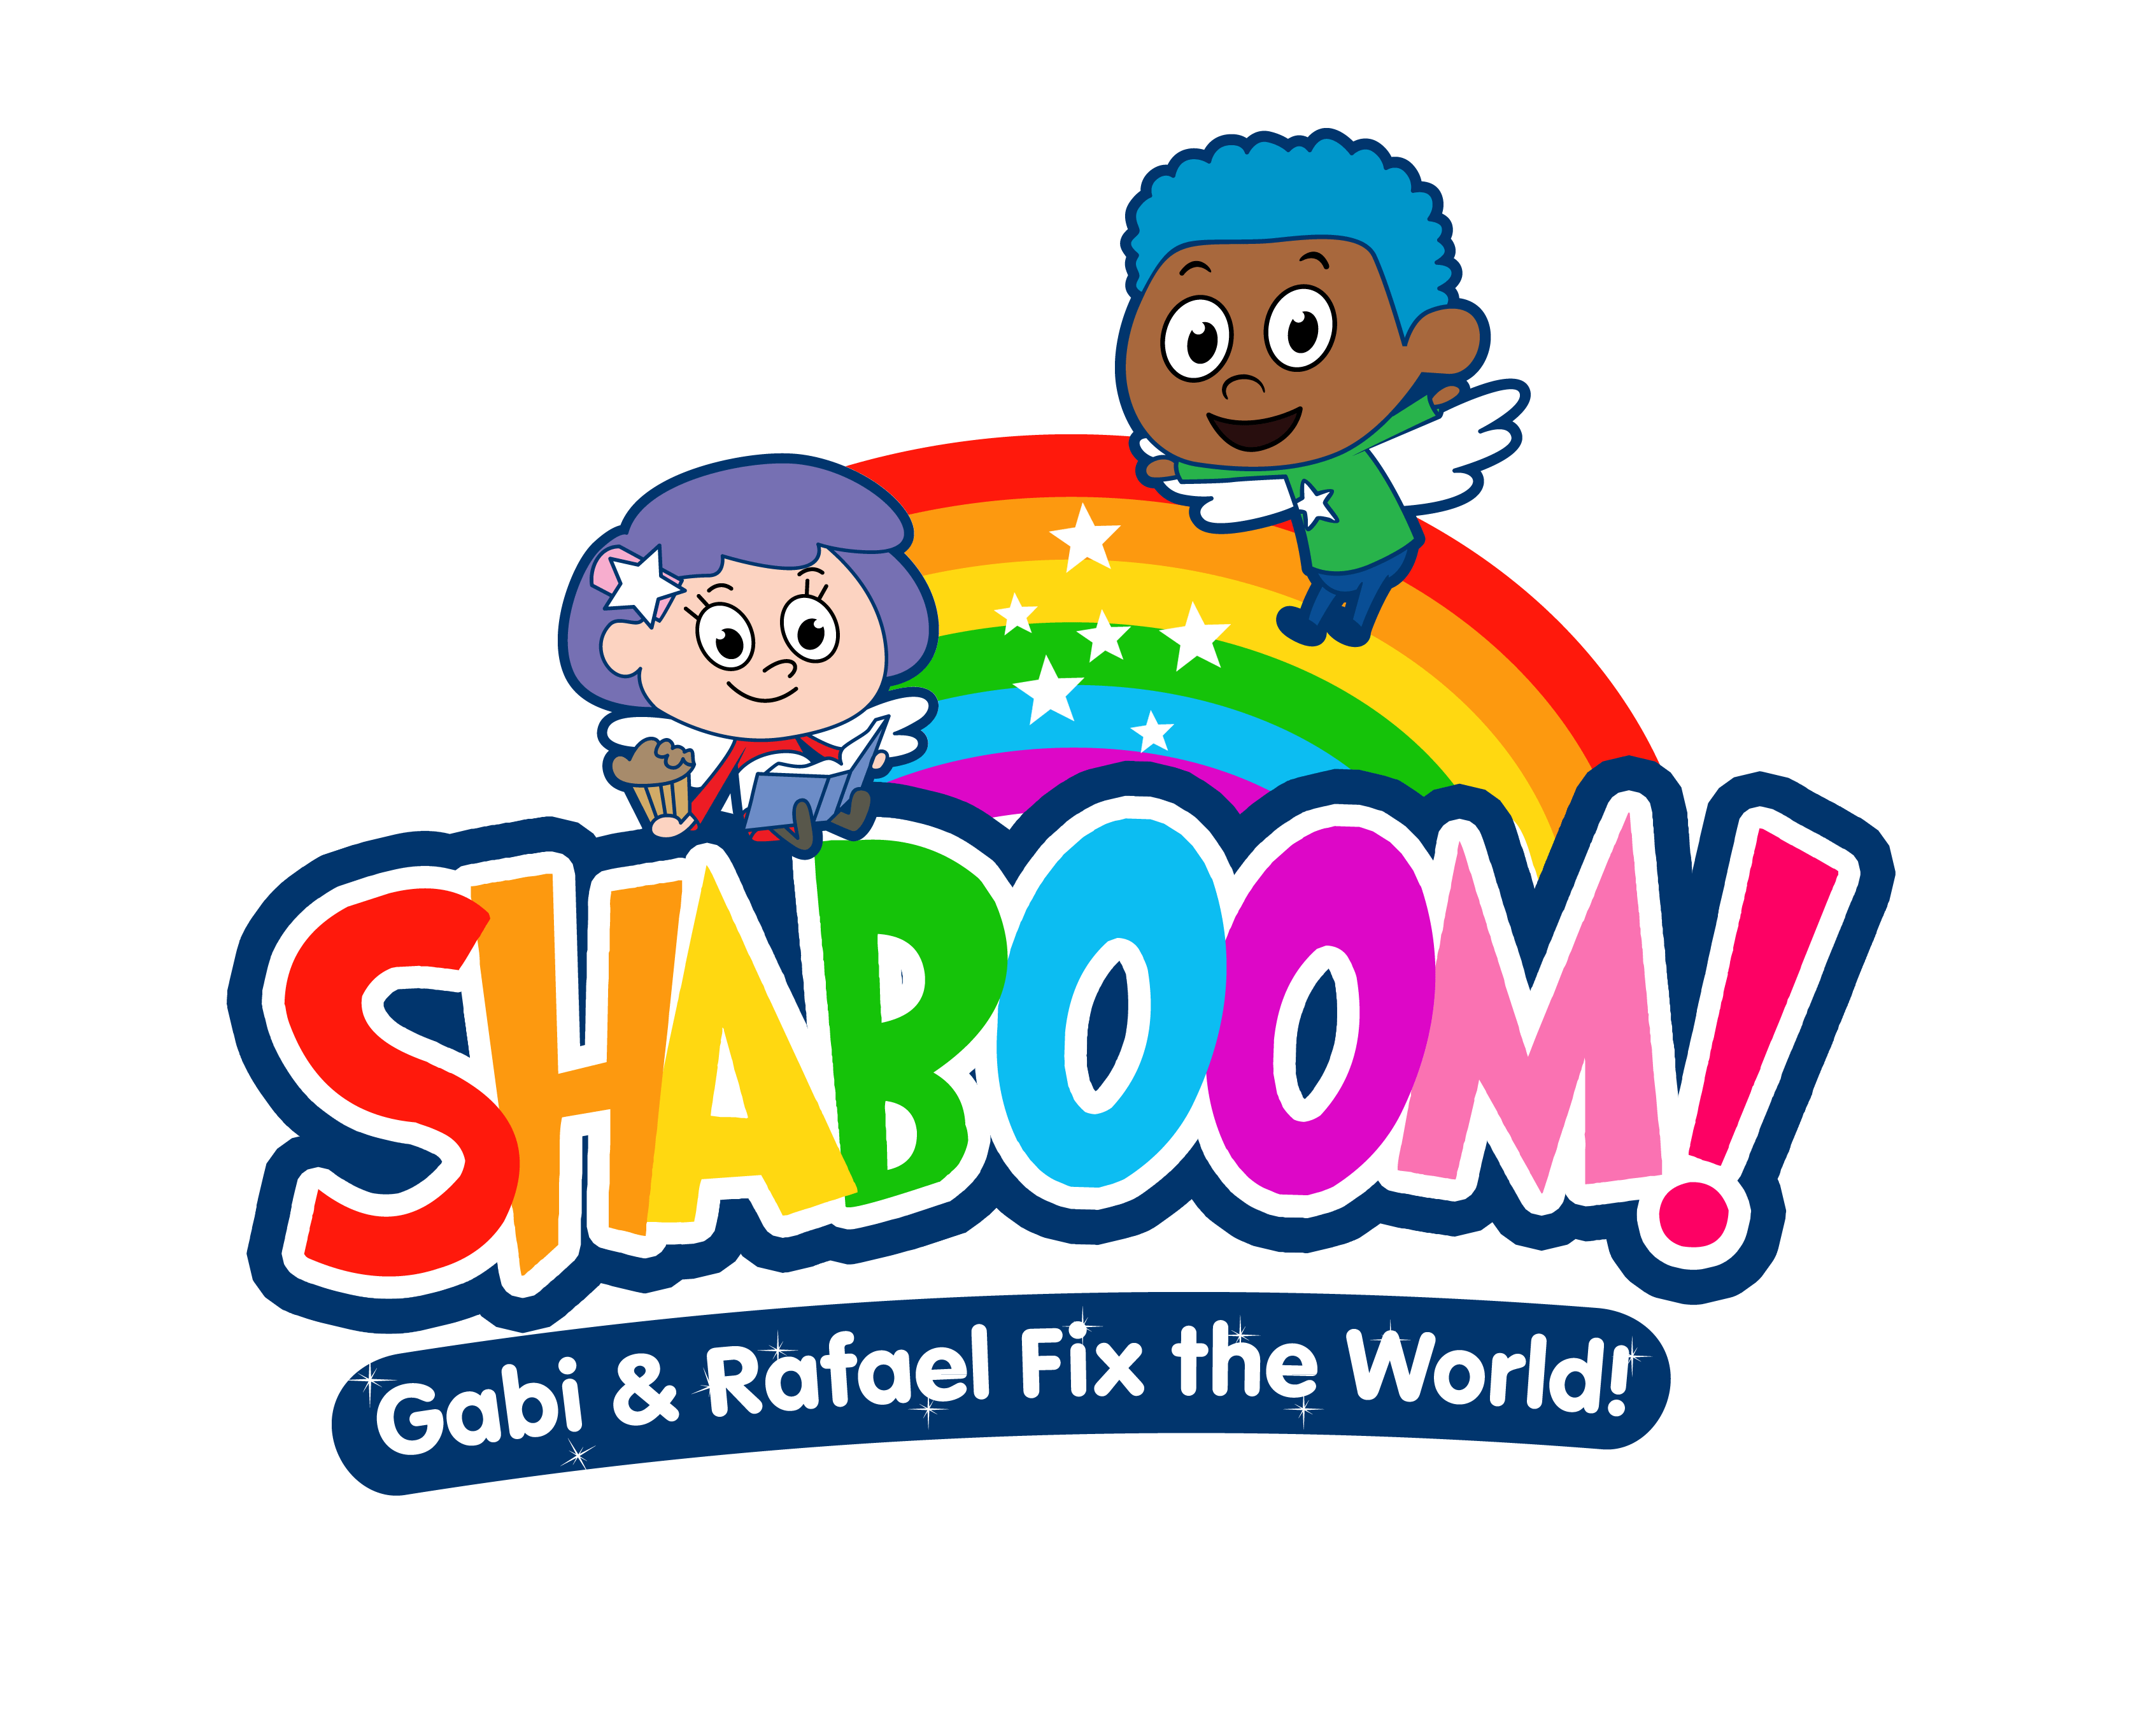 Shaboom! Online Series on Jewish Values to Premiere this Spring